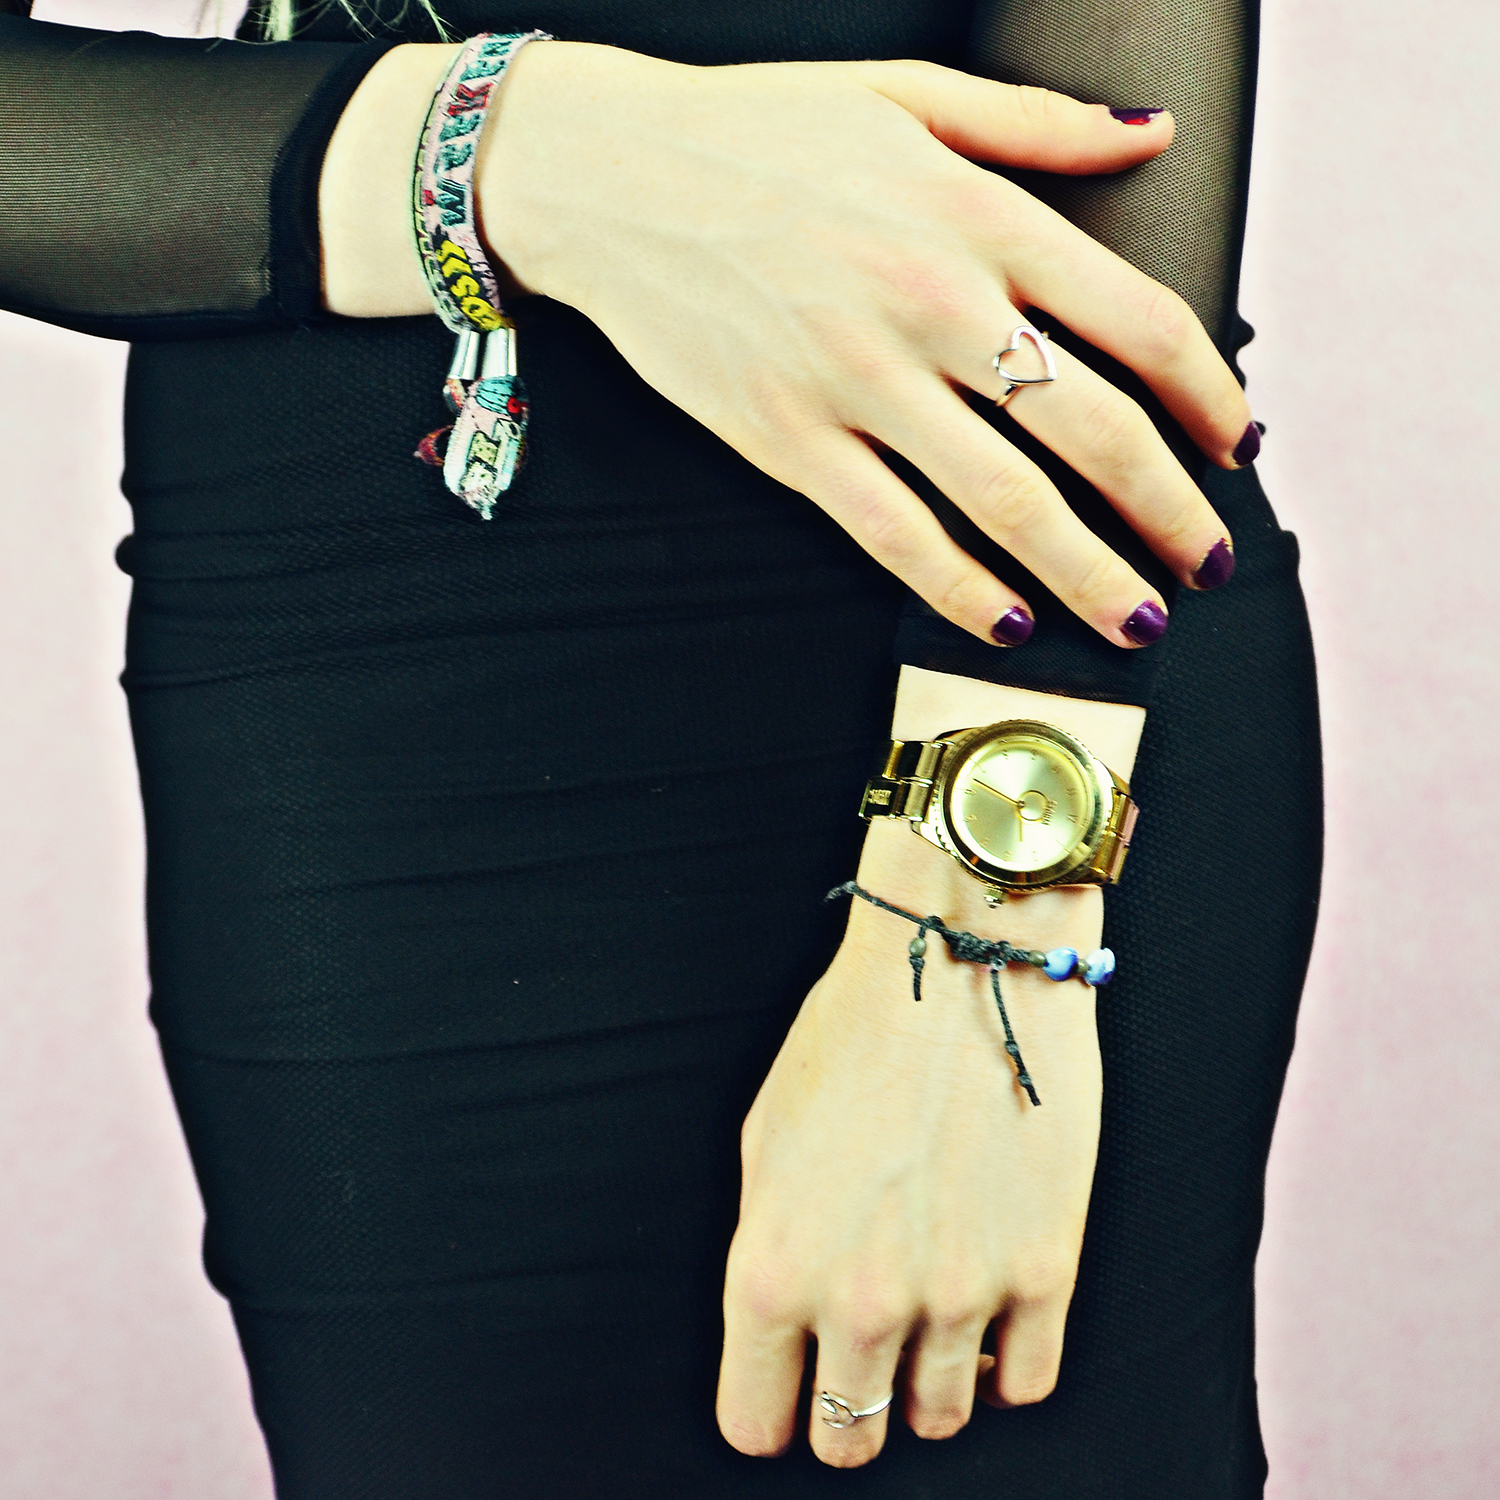 Storm Watches Limited Edition, Heart Ring, Moon Ring, Black Moon Shop, Hybrid Dress